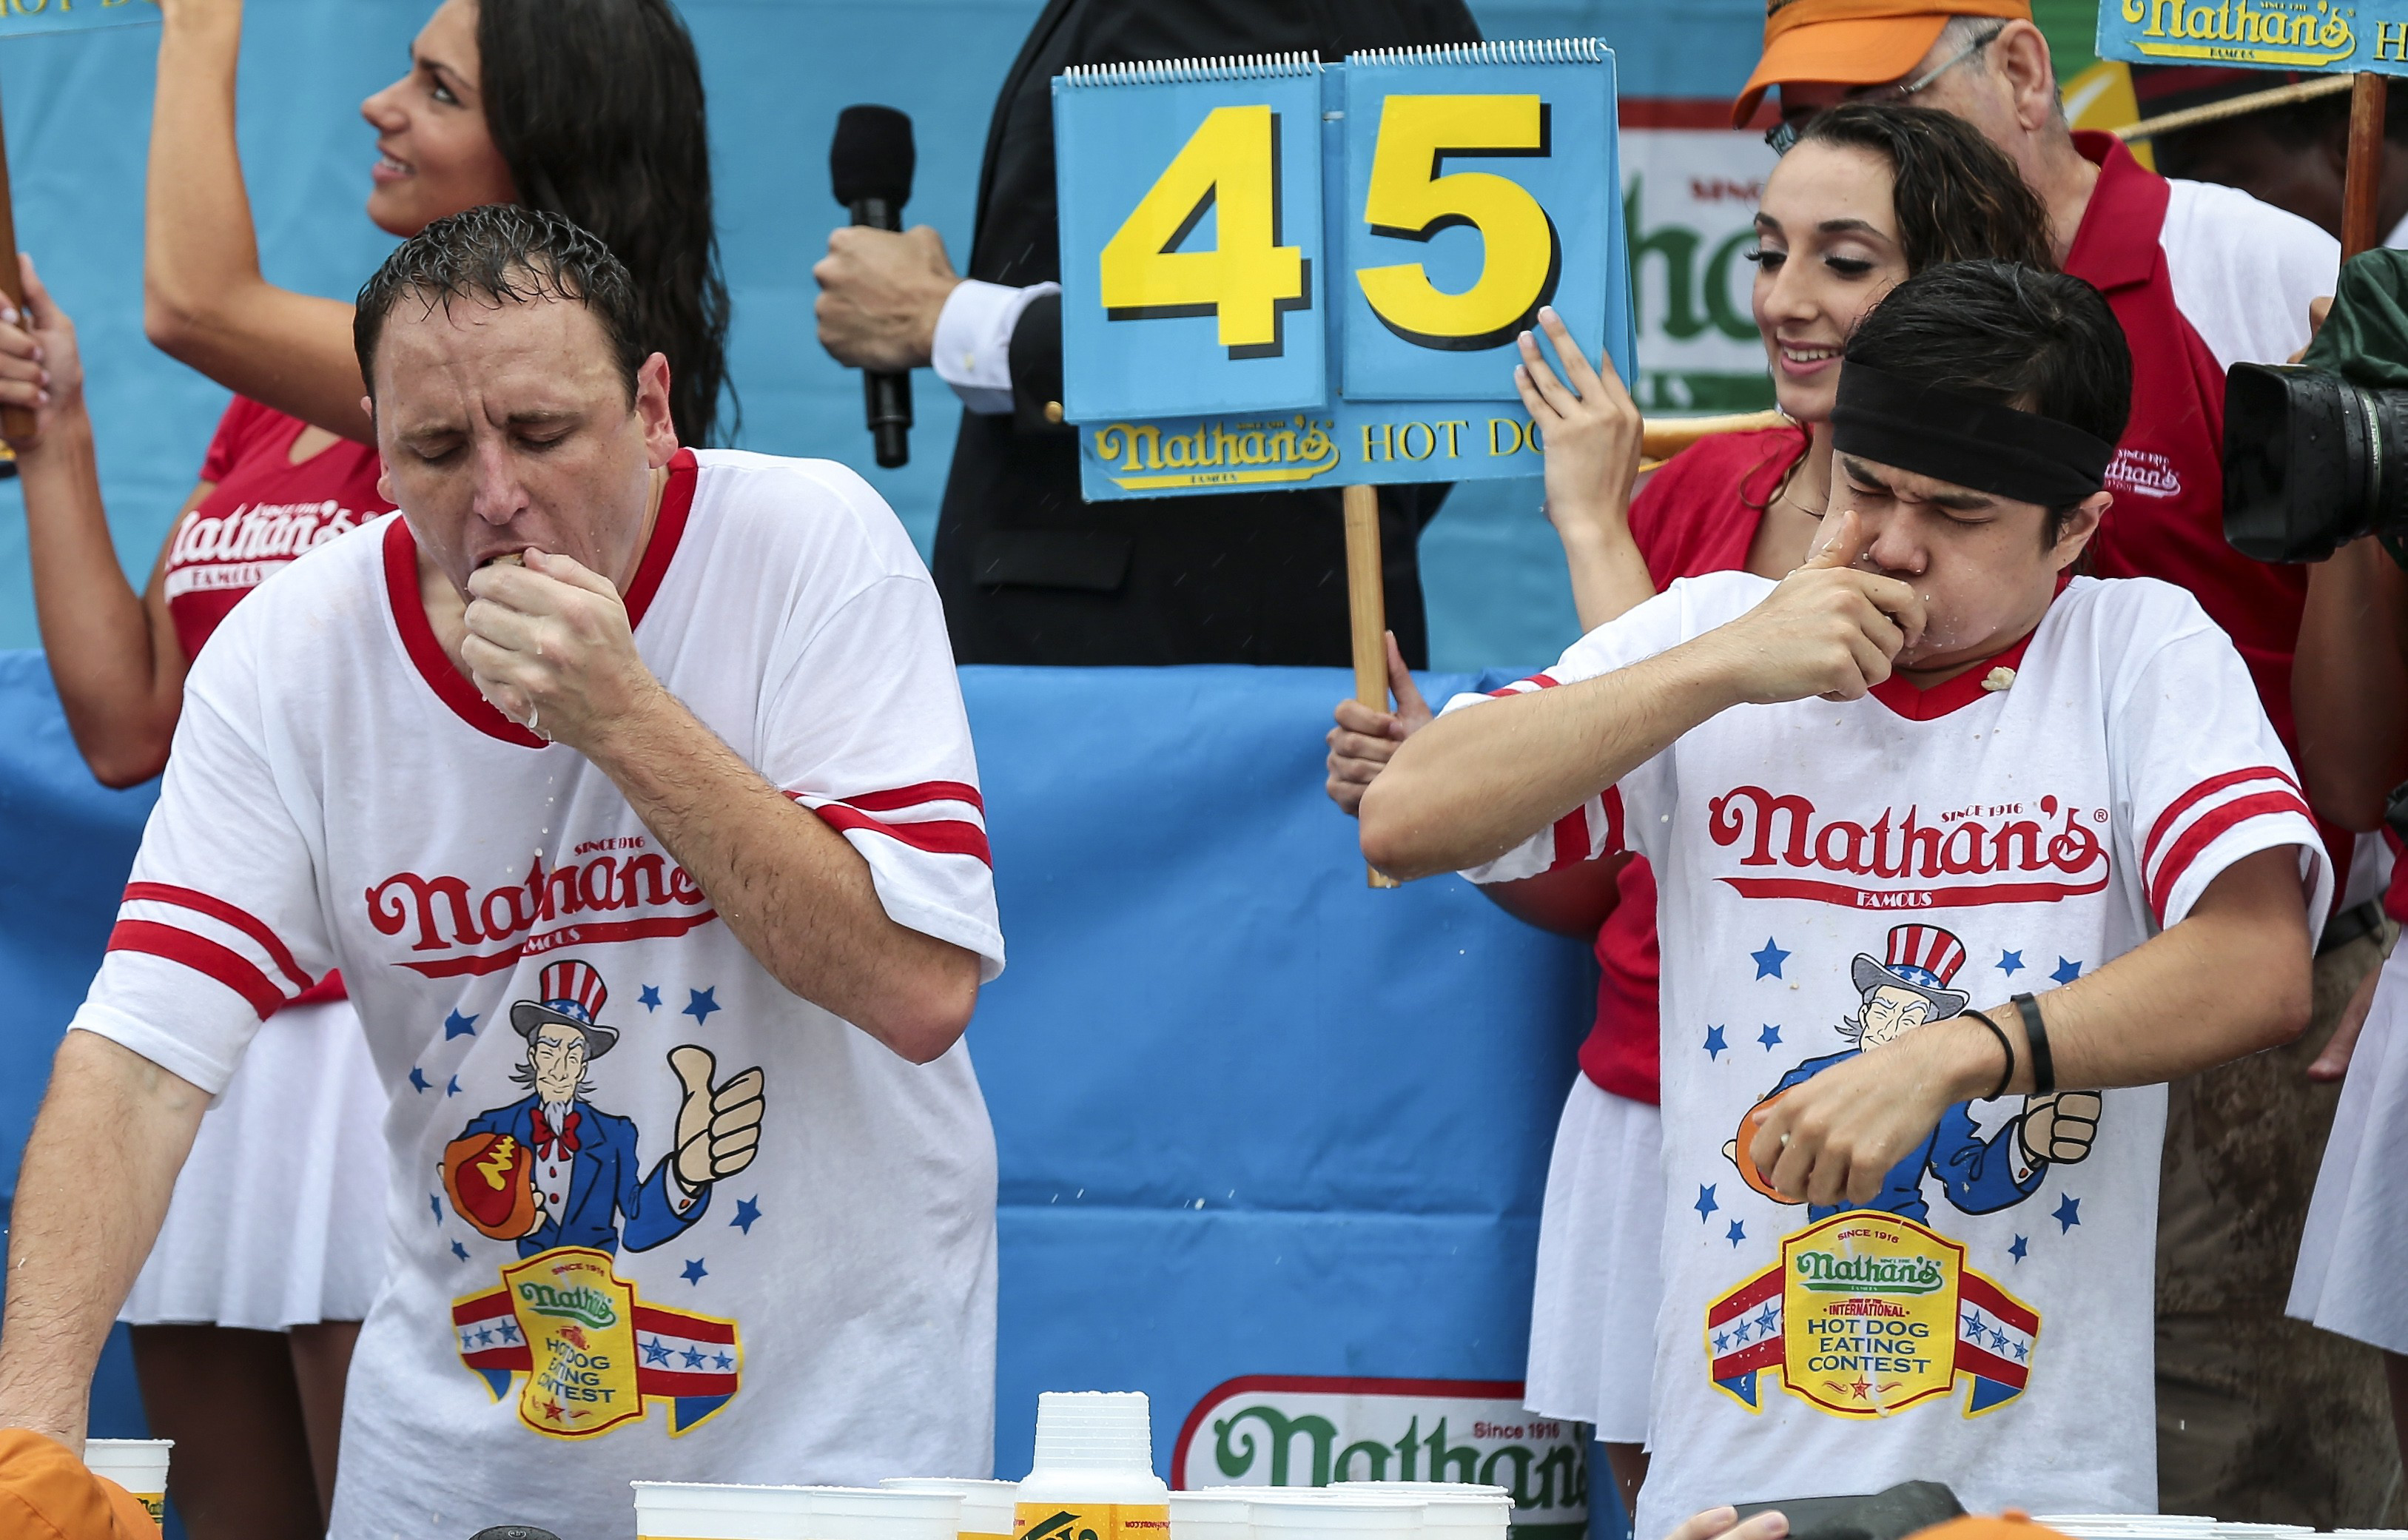 Nathan S Hot Dog Eating Contest Time